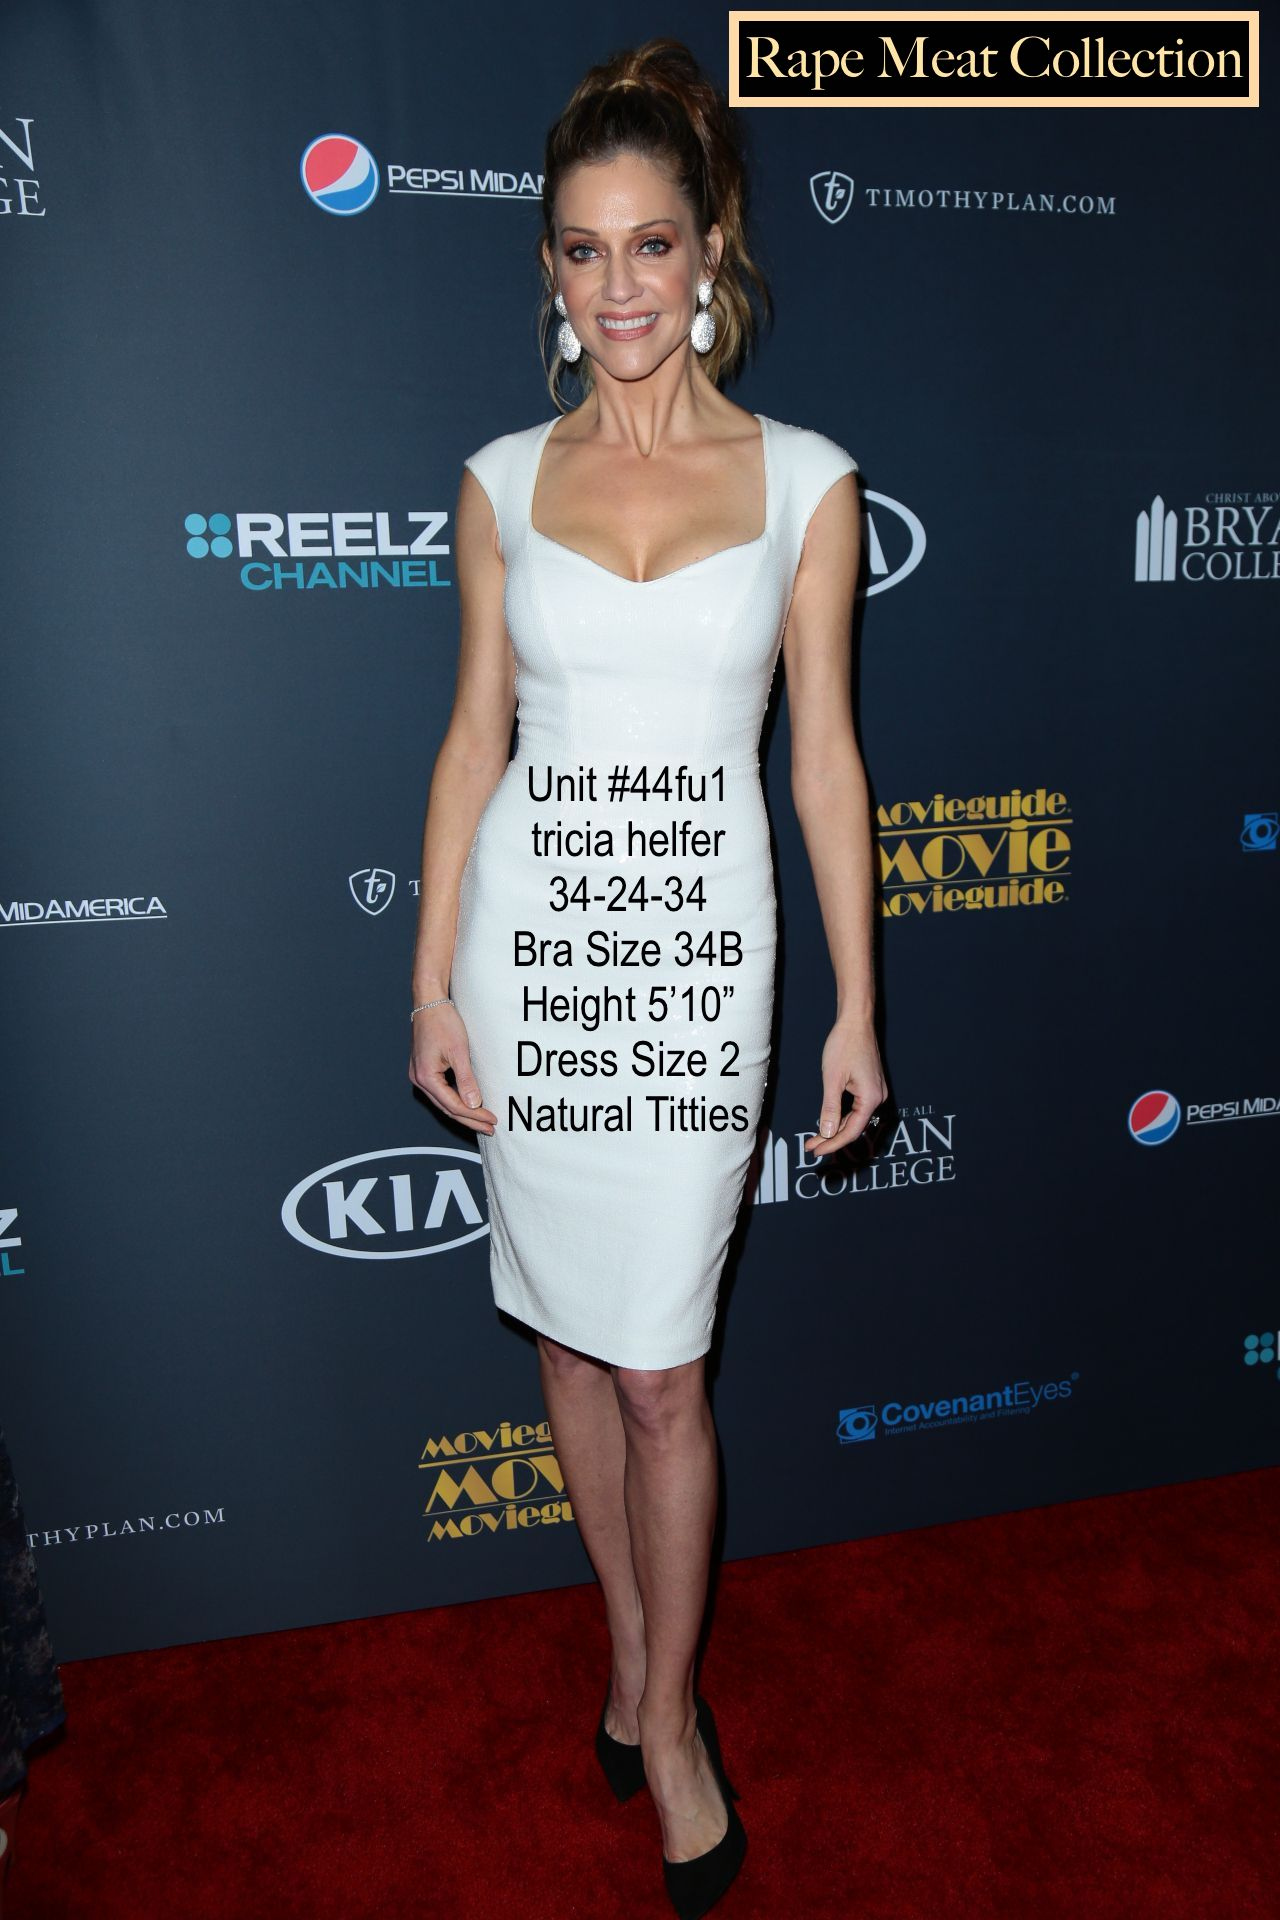 _tricia-helfer-at-25th-annual-movieguide-awards-in-universal-city-2-10-2017-5 2.jpg